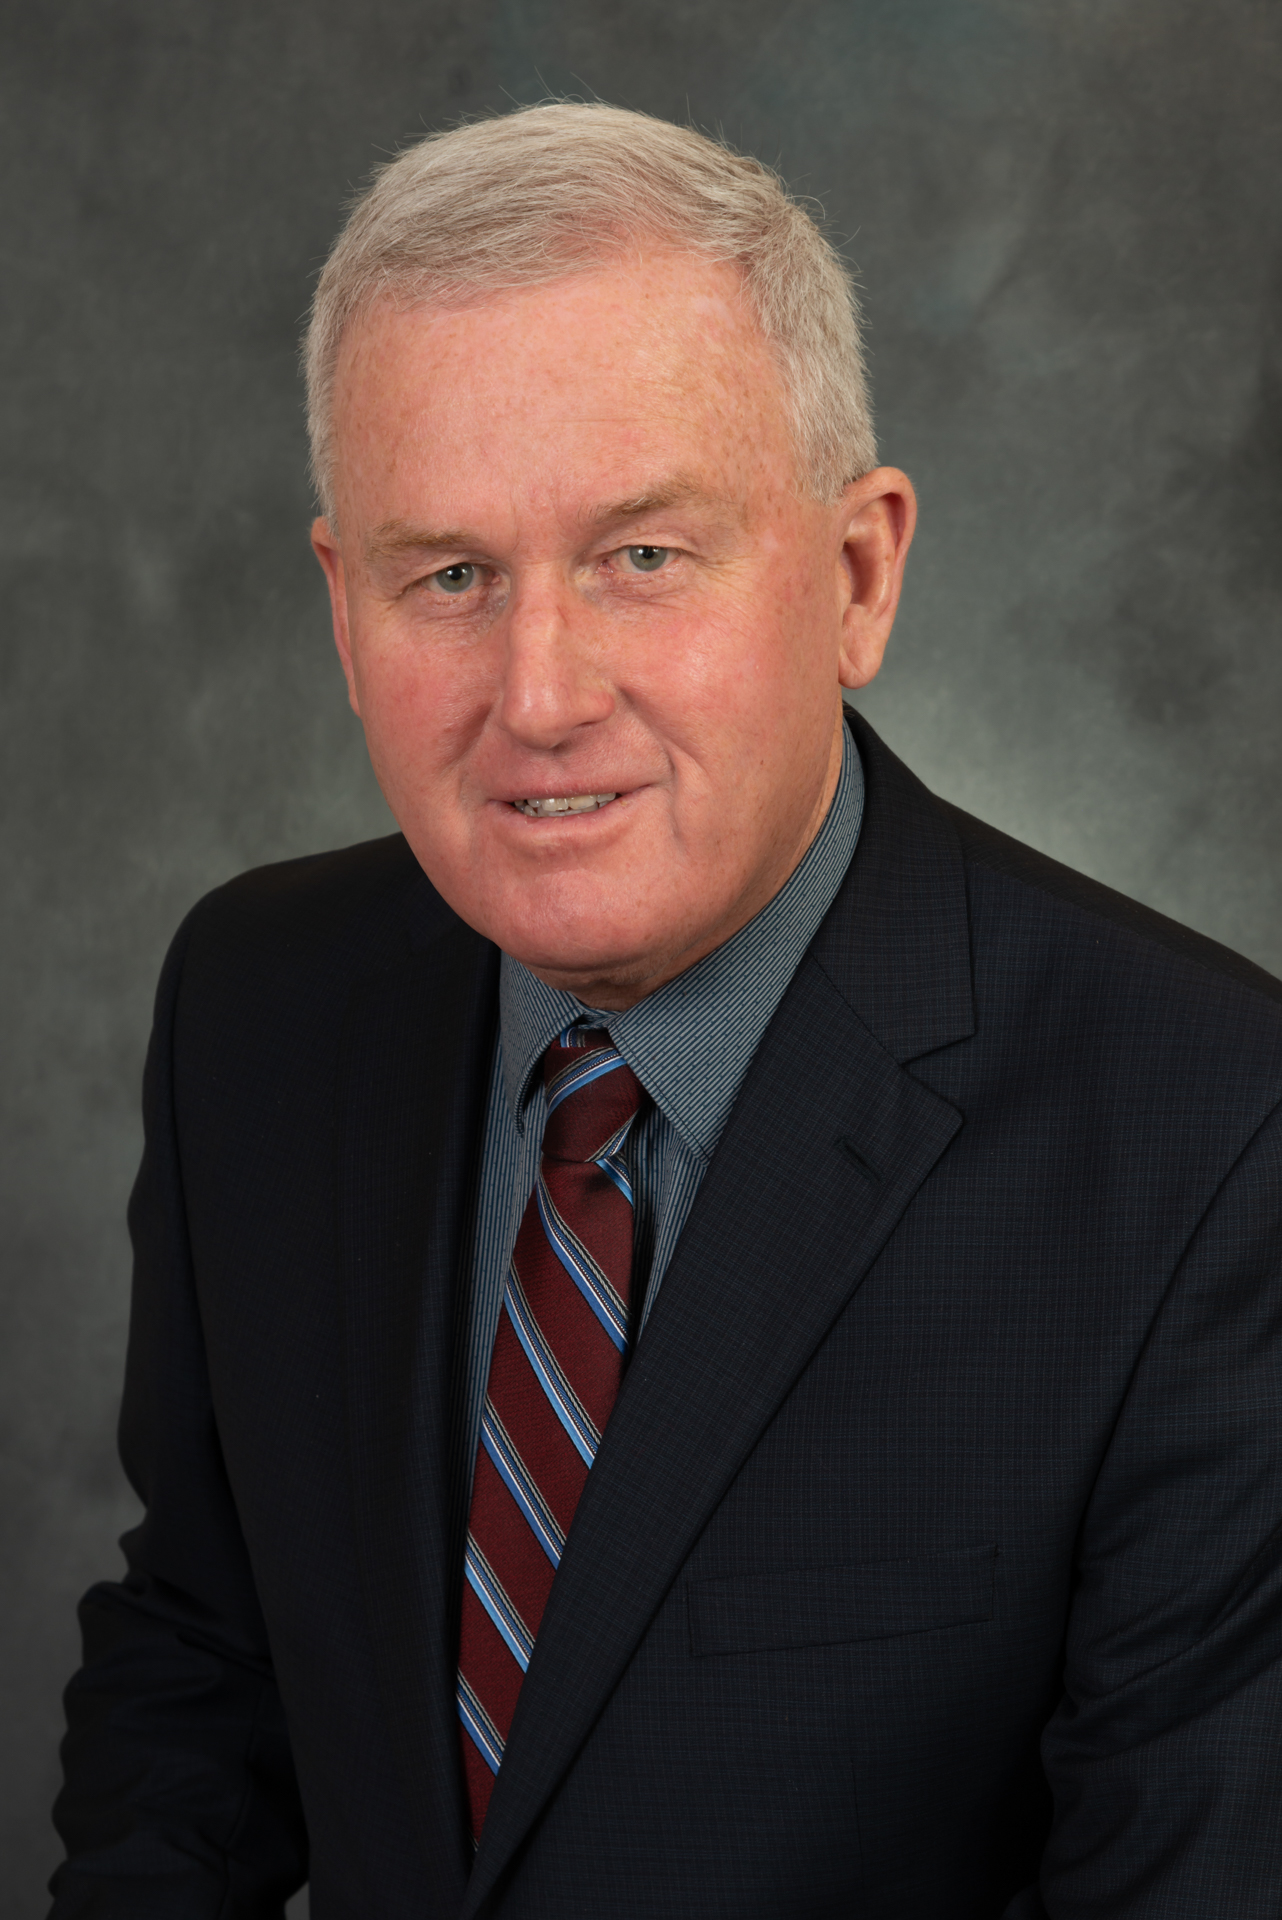 Image of Councillor Mitchell